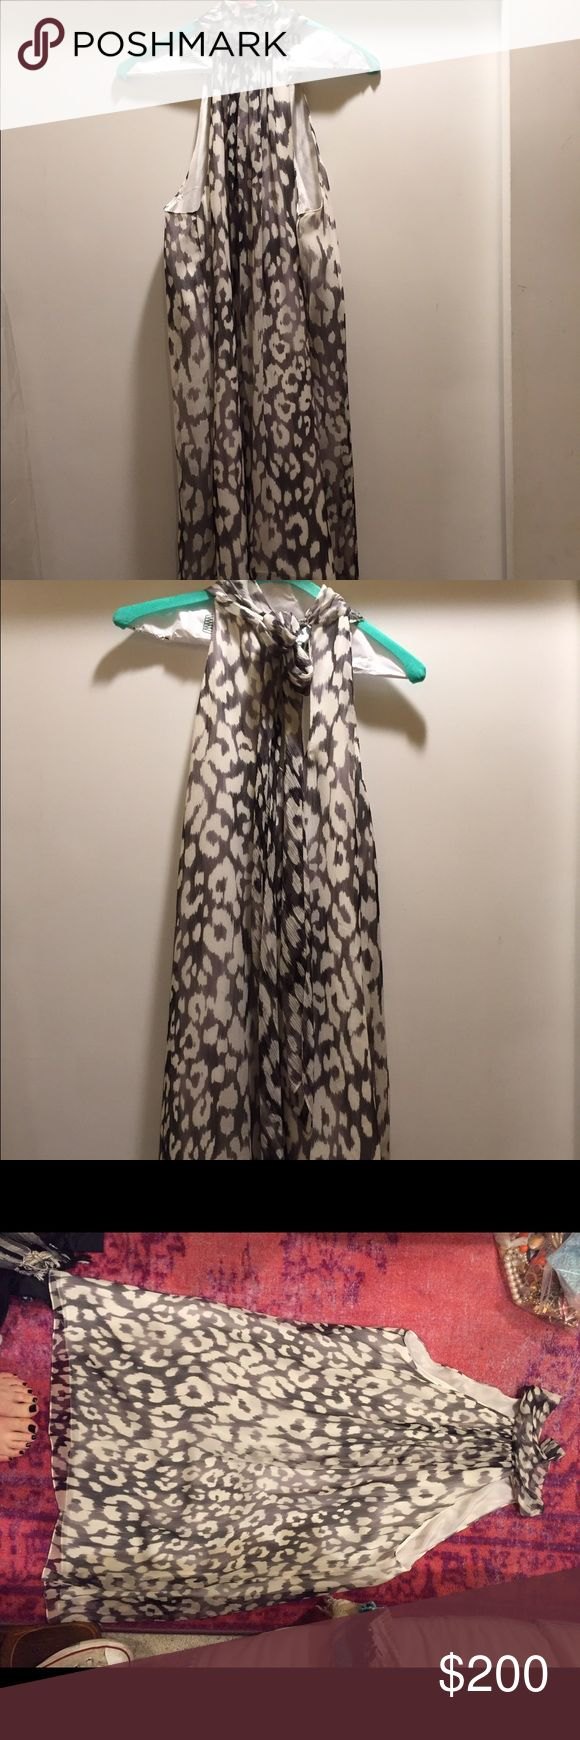 Ramy Brook Mew York Dress Leopard Gently Used Ramy Brook New York Dress Leopard Gently Used - in great condition! Only worn a couple times! Ramy Brook Dresses Wedding